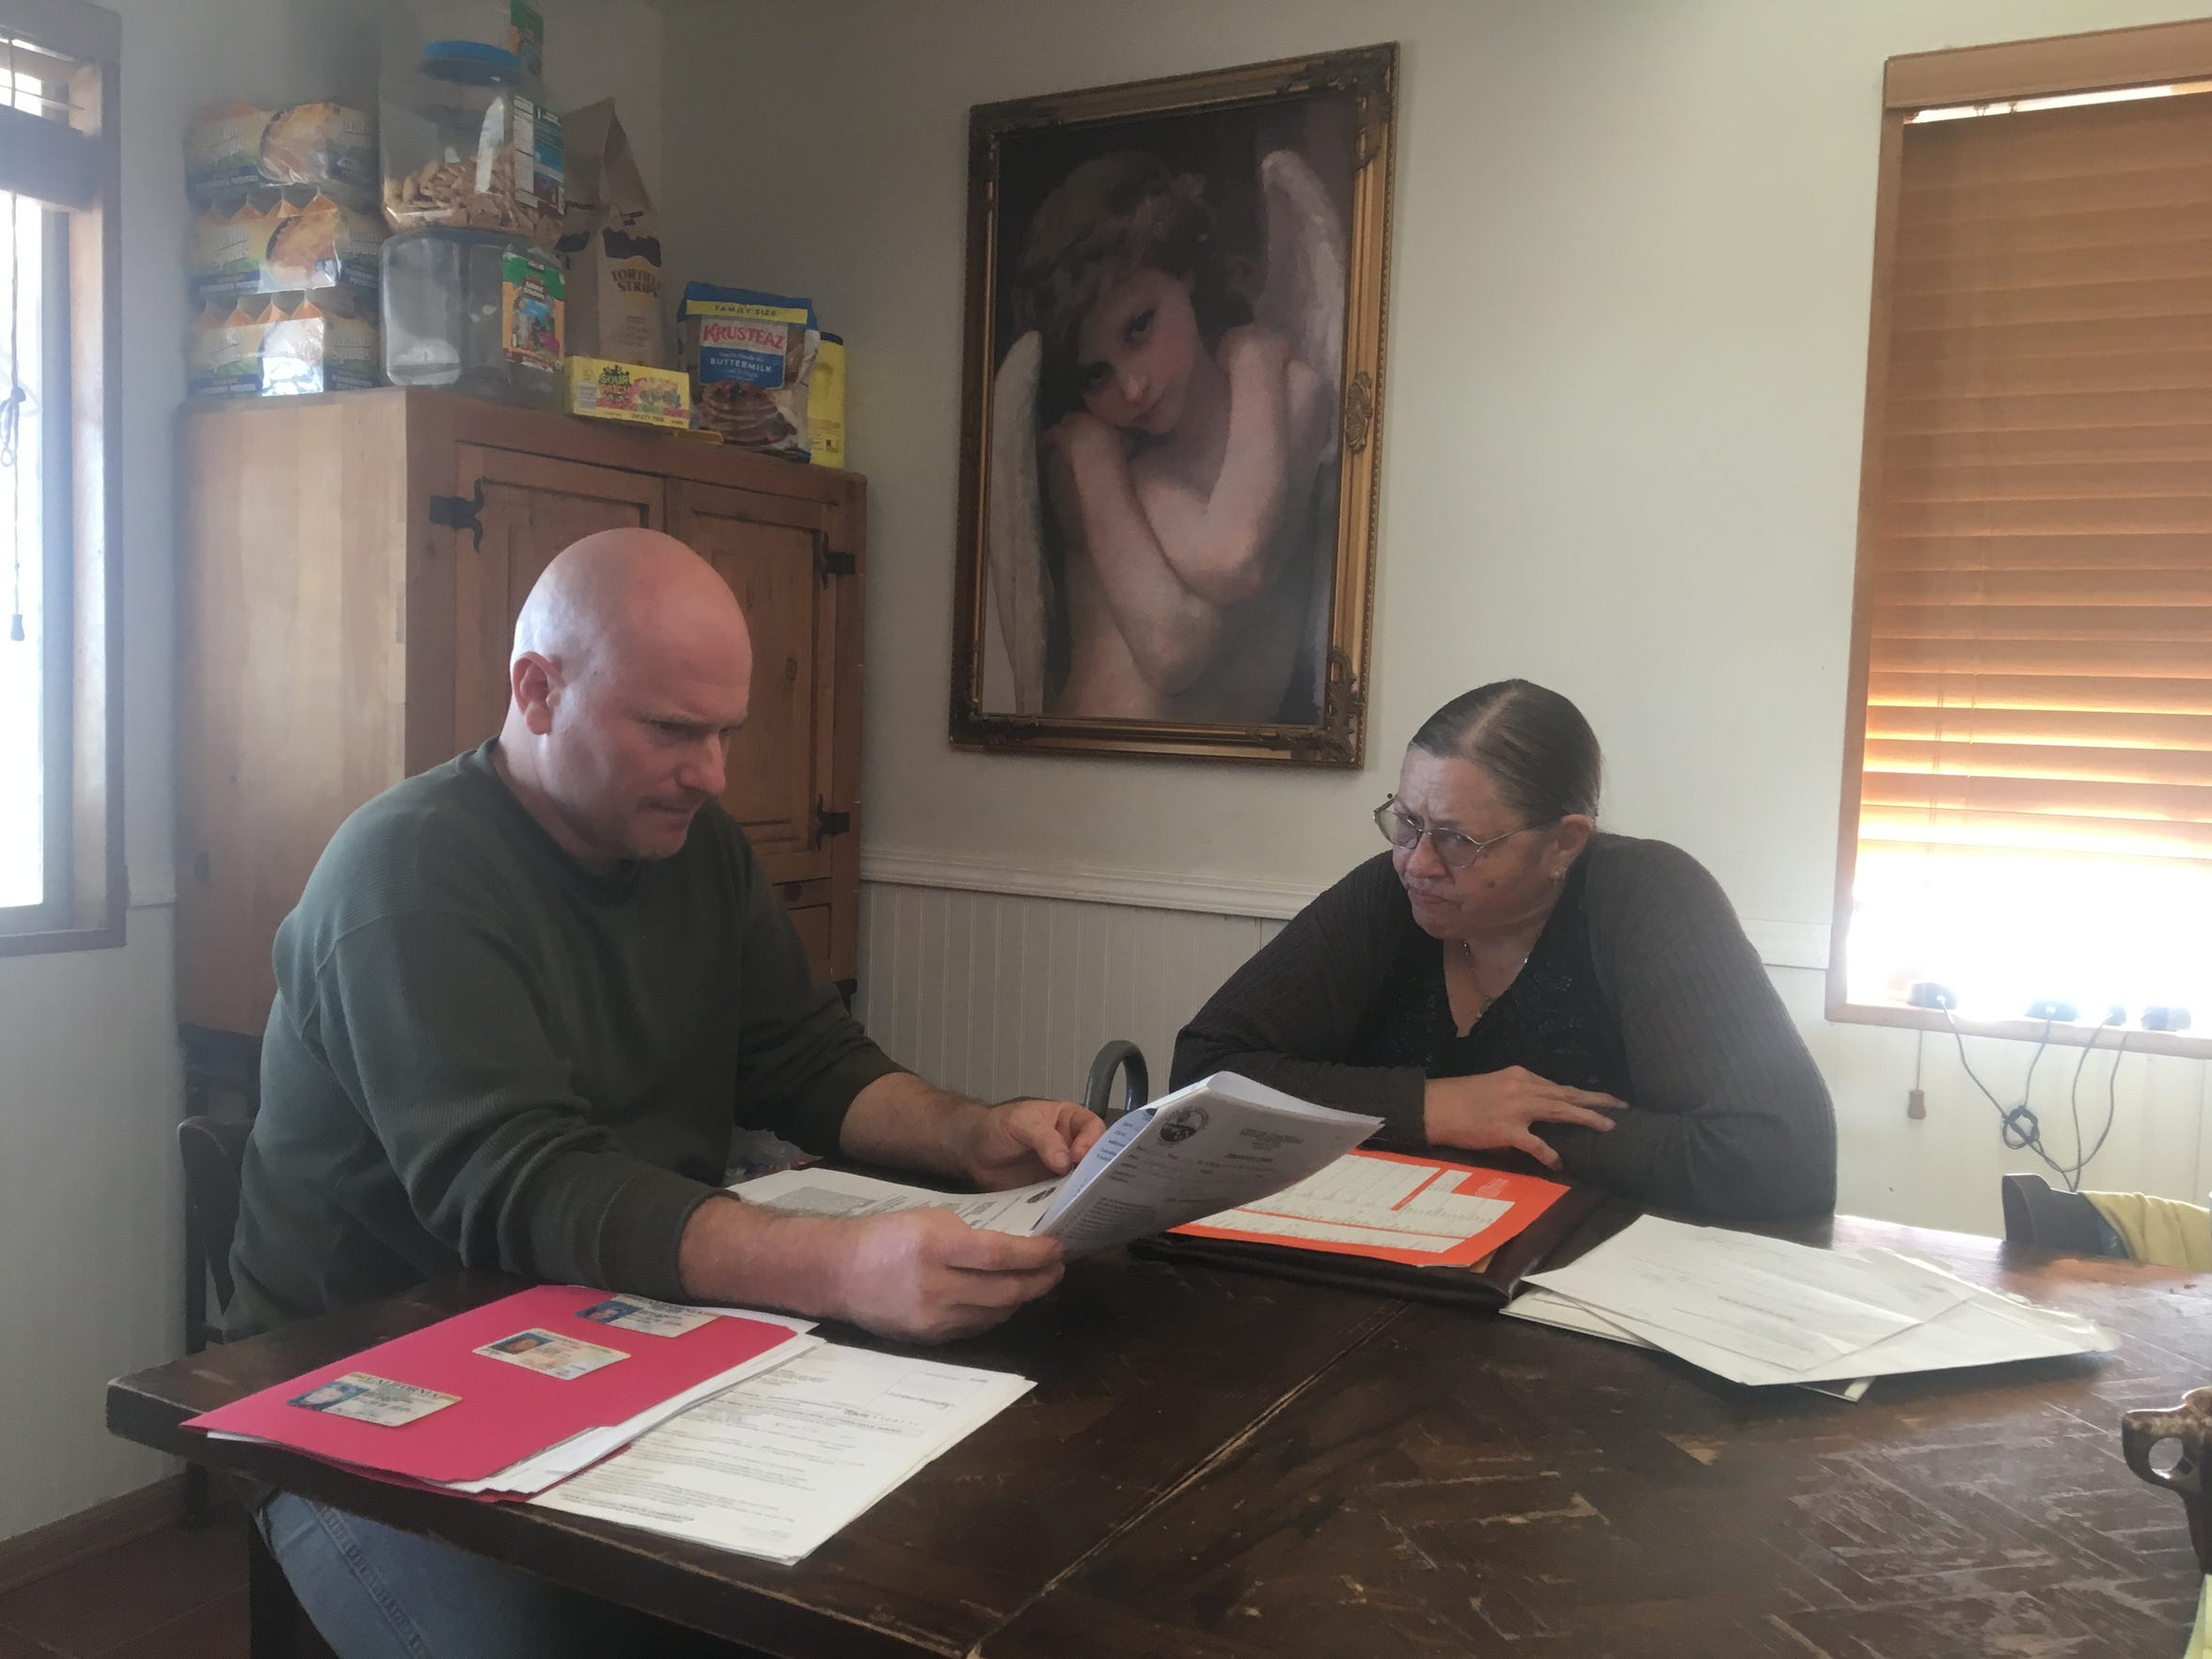 Christopher Slade and Suzanne Avila, the grandson and daughter of Marjorie Sansom, review citations and legal documents that Coachella mailed to an old address where Sansom did not live. The city says that, because Sansom did not respond to these citations, Slade and Avila are responsible for her debt.